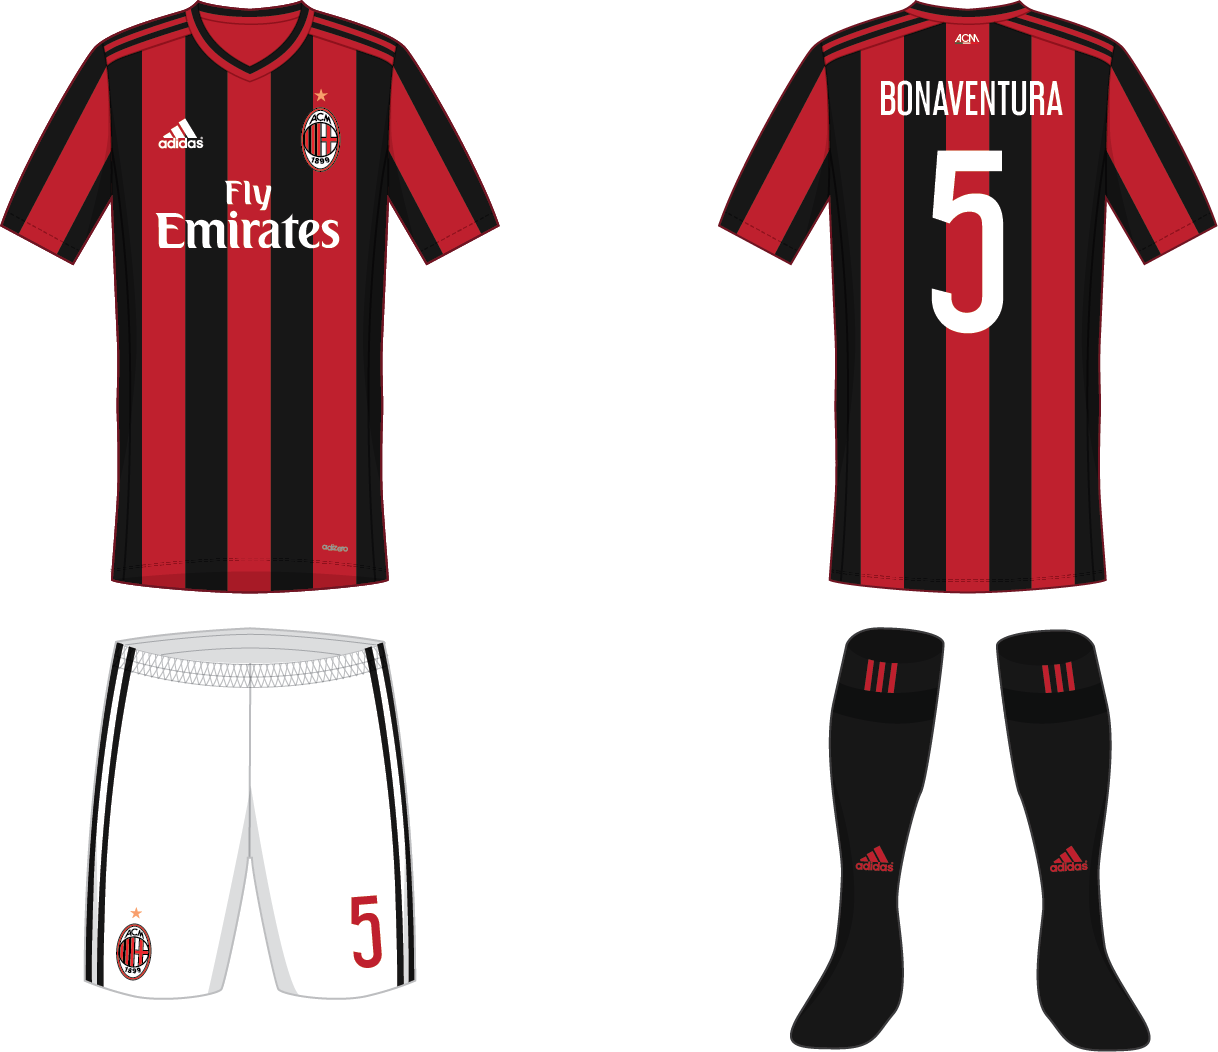 timeless design 9de06 608aa AC Milan - Home kit